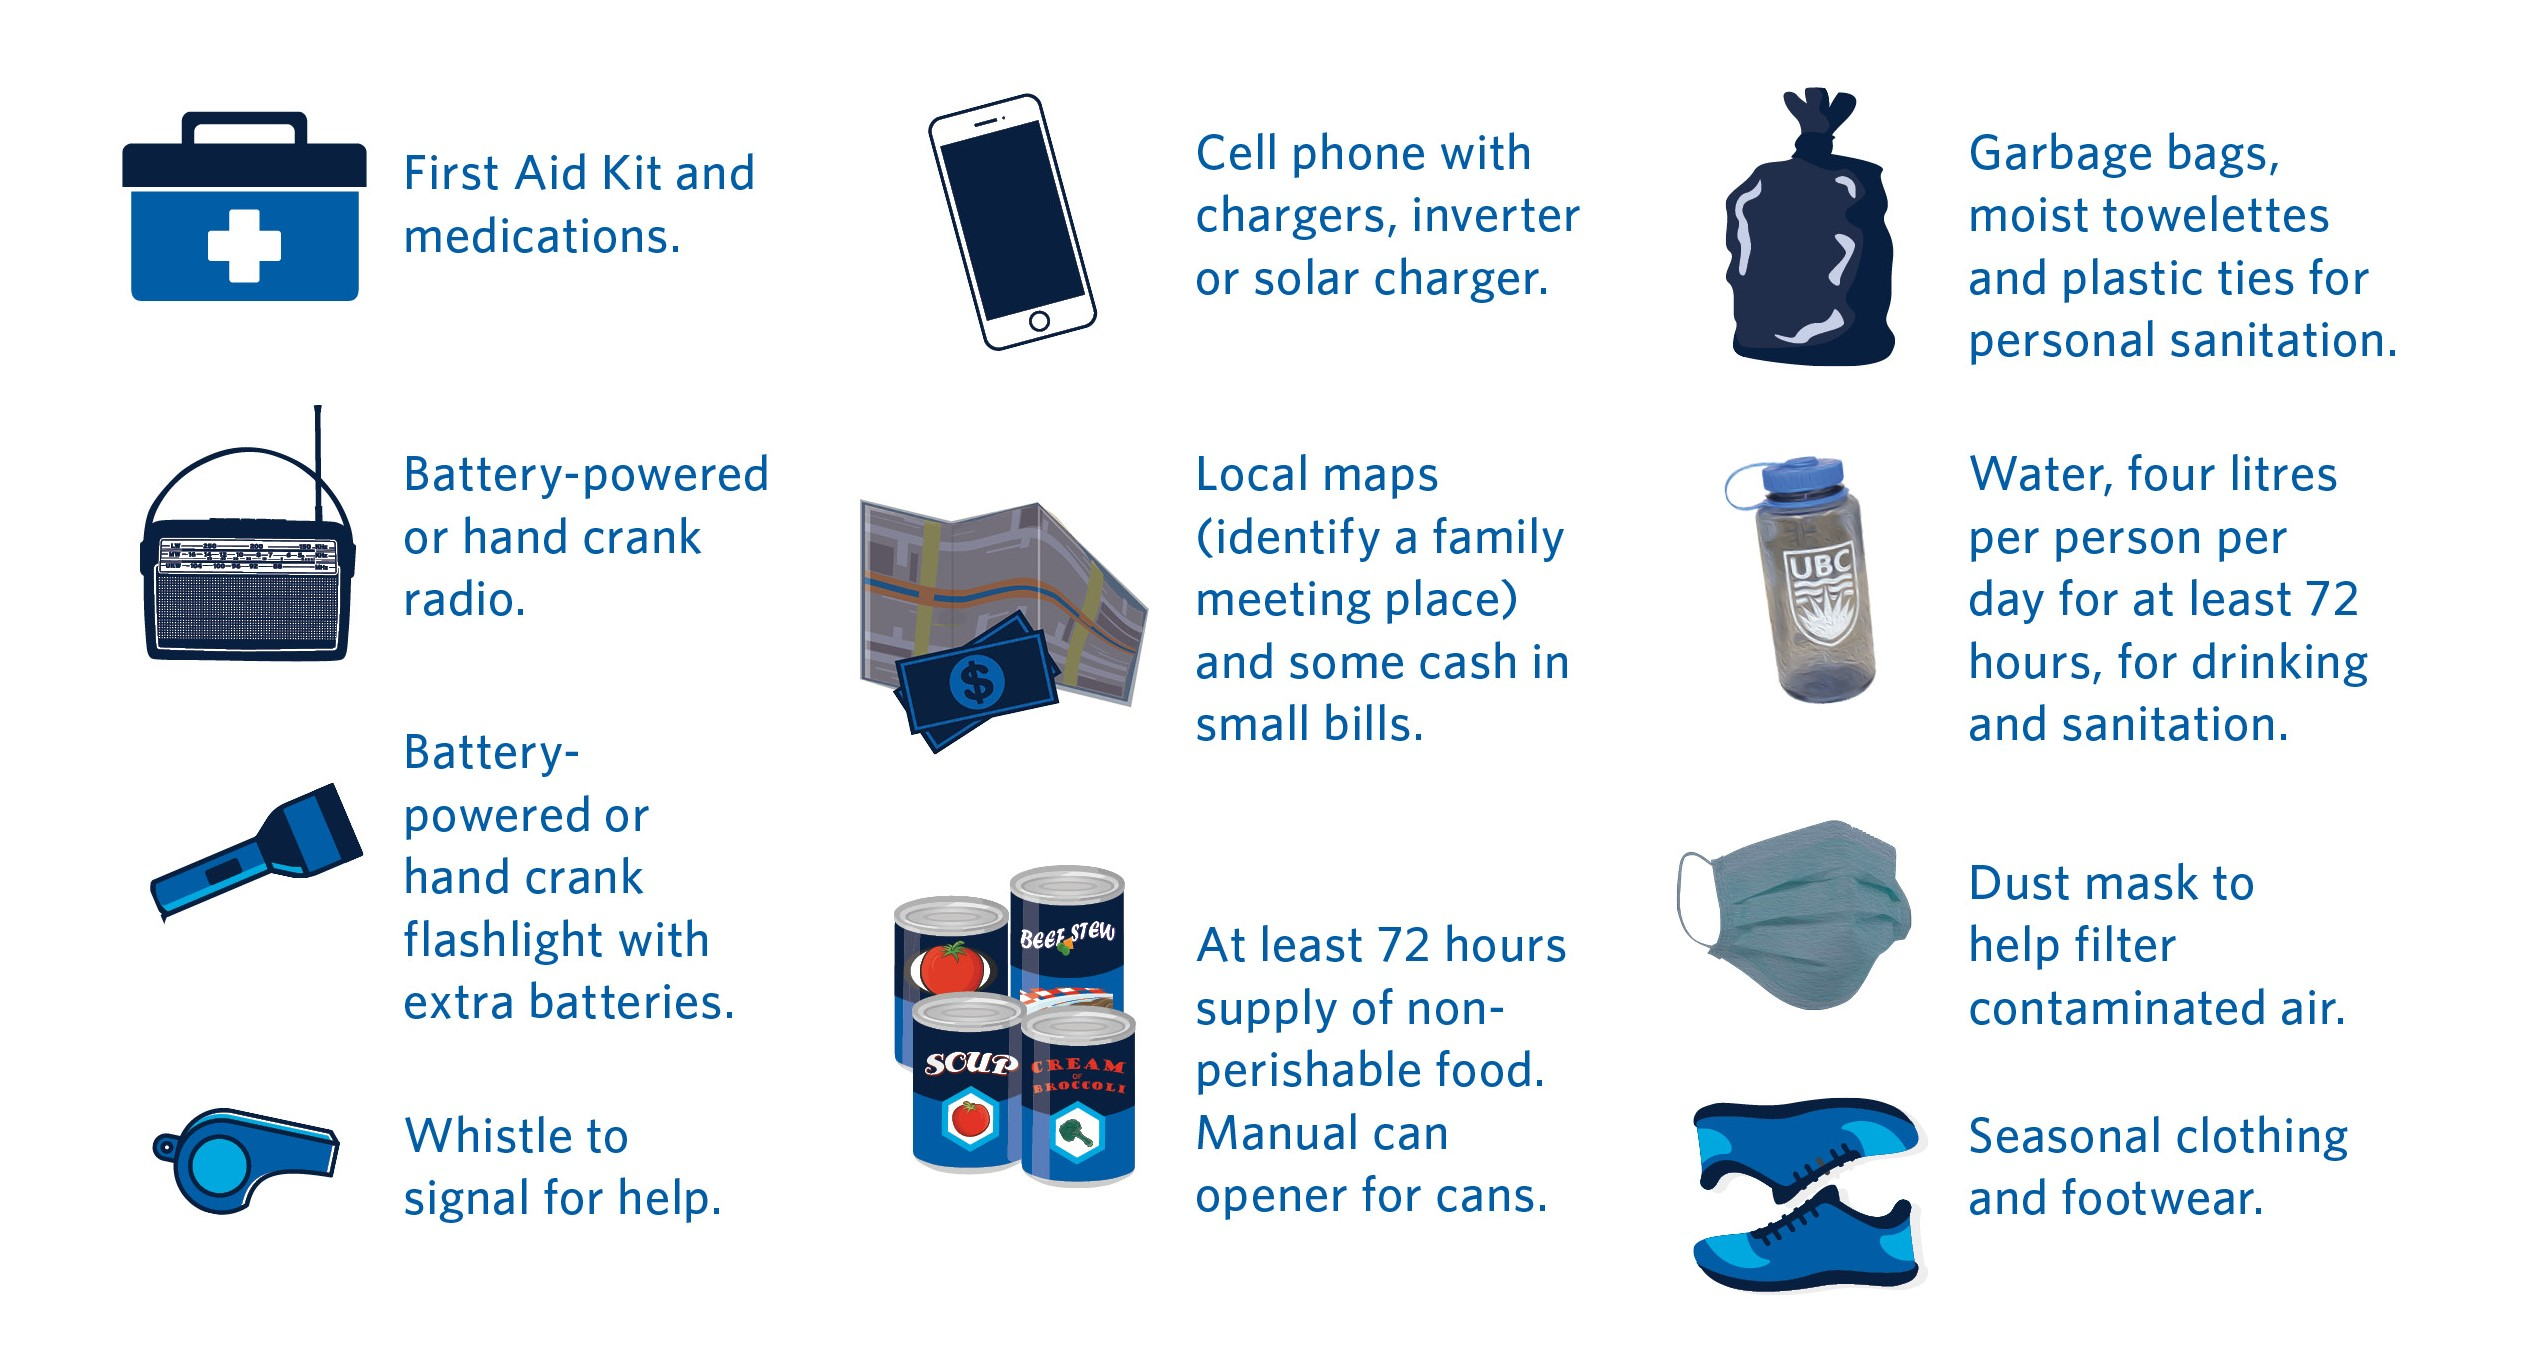 Earthquake risk management services what to include in a basic emergency supply kit solutioingenieria Image collections